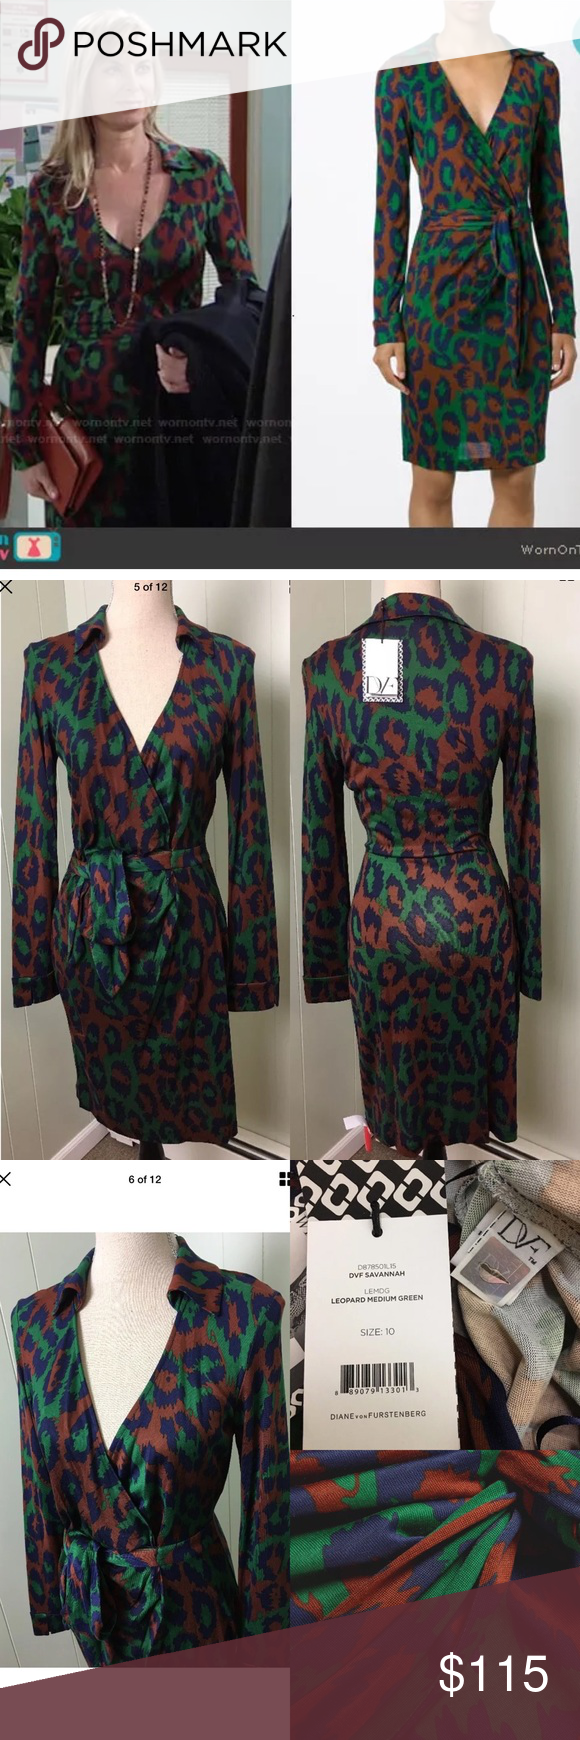 "Diane Von Furstenberg DVF Savannah Silk Dress Diane Von Furstenberg DVF Savannah Leopard Green Faux Wrap Silk Dress  Details:  Classic DVF ""wrap"" silhouette V-neckline Spread collar Long sleeves silk jersey 100% silk Unlined Laying Flat:  Length 38.5"", wrap waist 14.5"" armpit to armpit 17.5"" Color: Green, blue and brown. Diane von Furstenberg Dresses Mini"